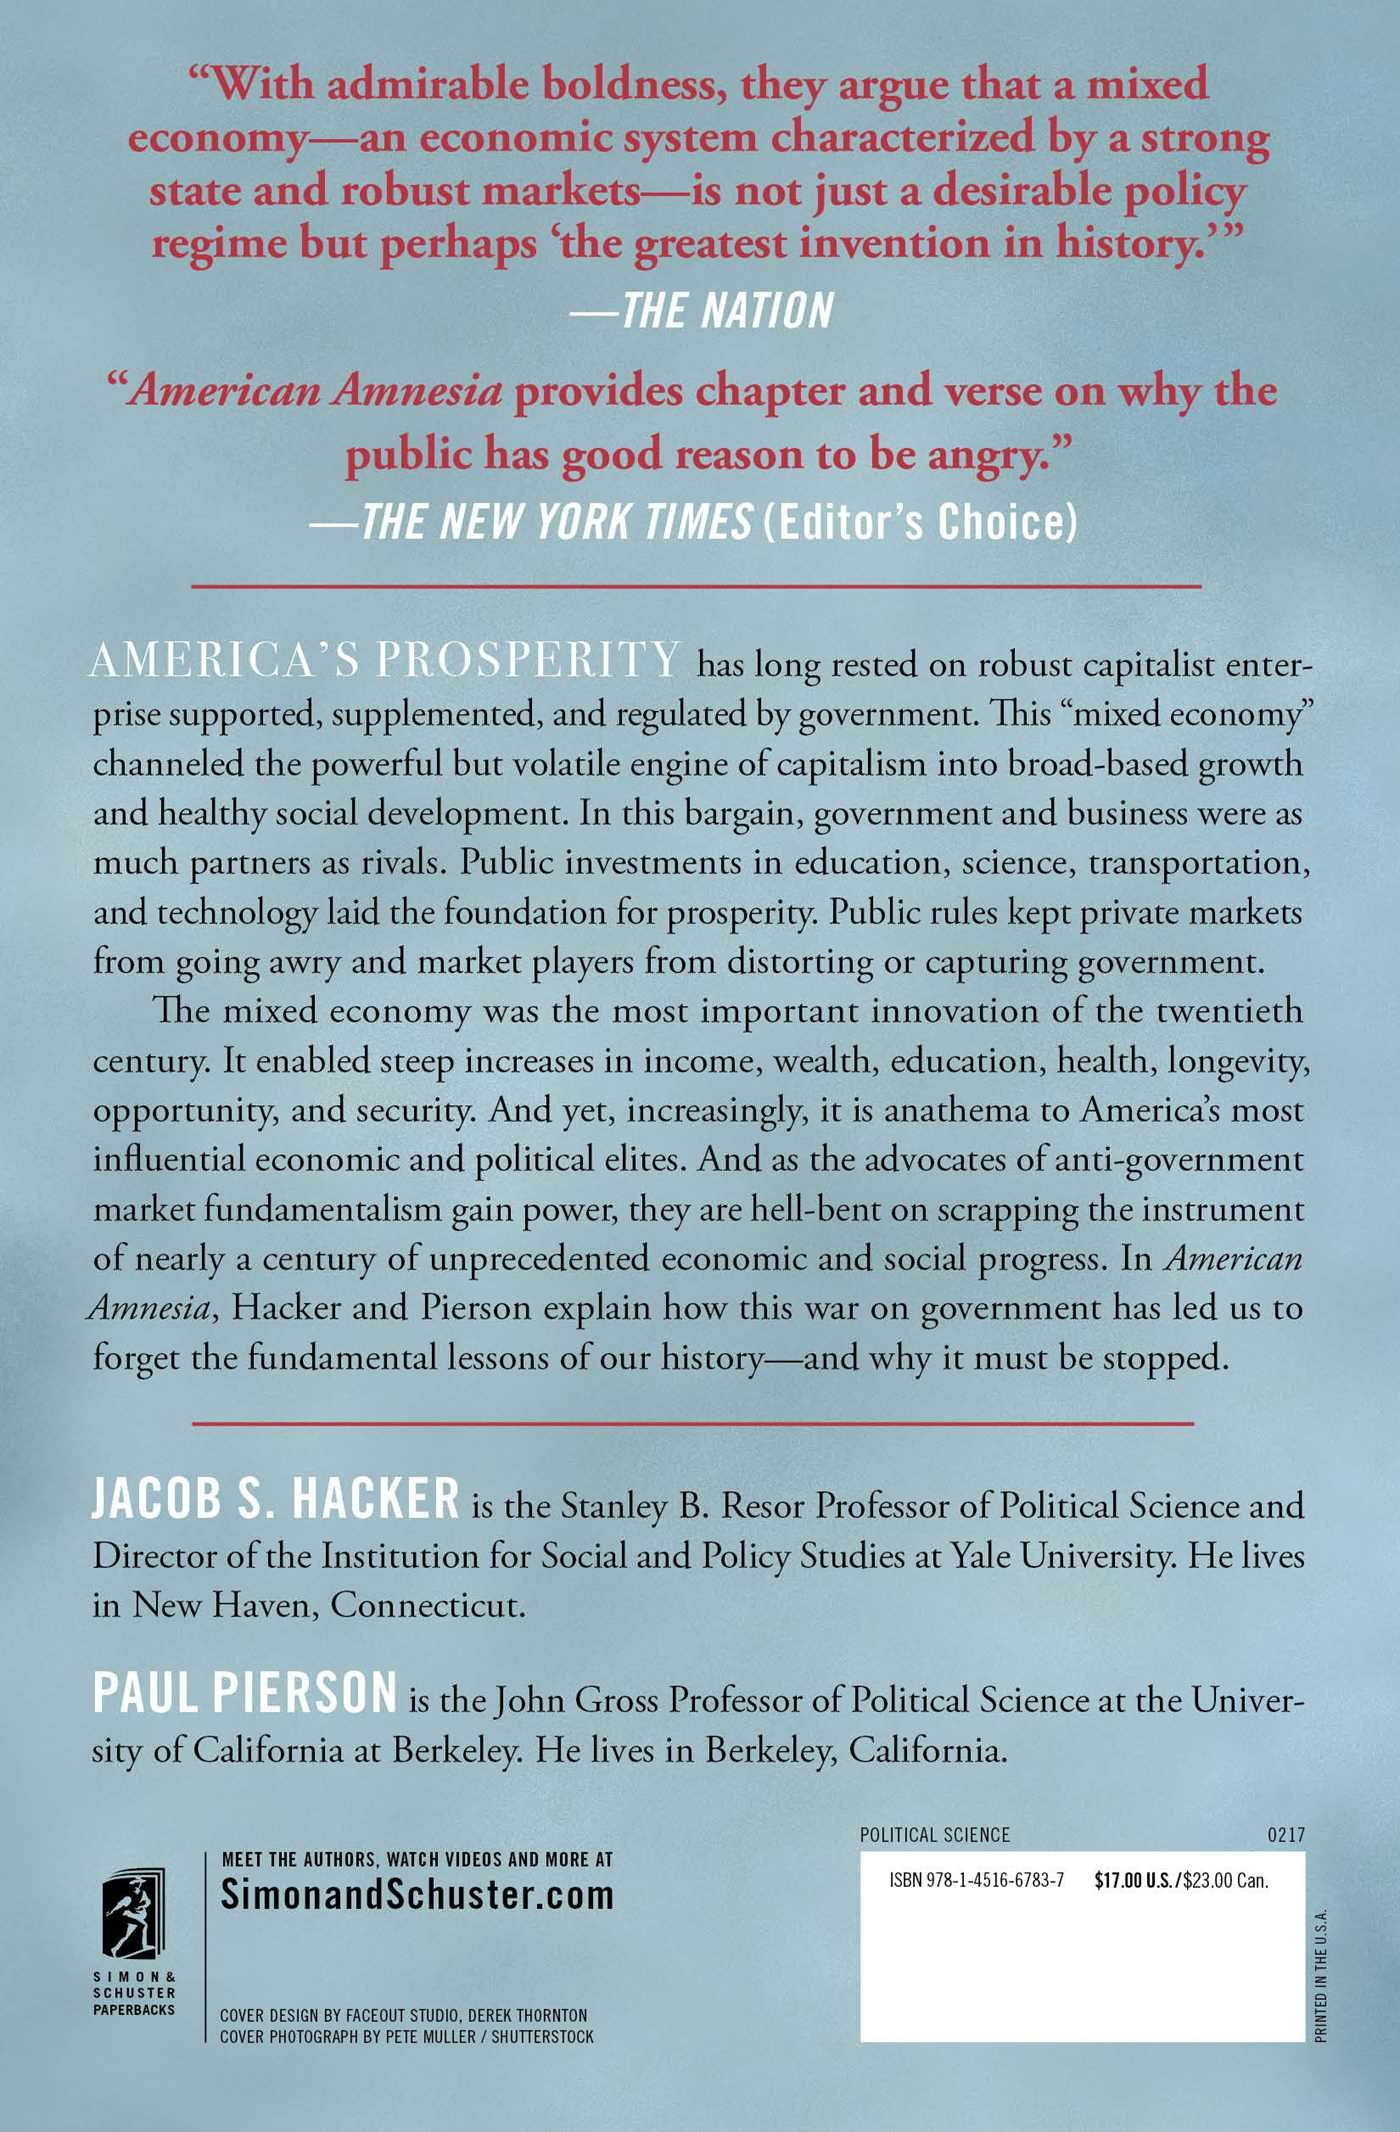 American amnesia how the war on government led us to forget what american amnesia how the war on government led us to forget what made america prosper jacob s hacker paul pierson 9781451667837 amazon books fandeluxe Images